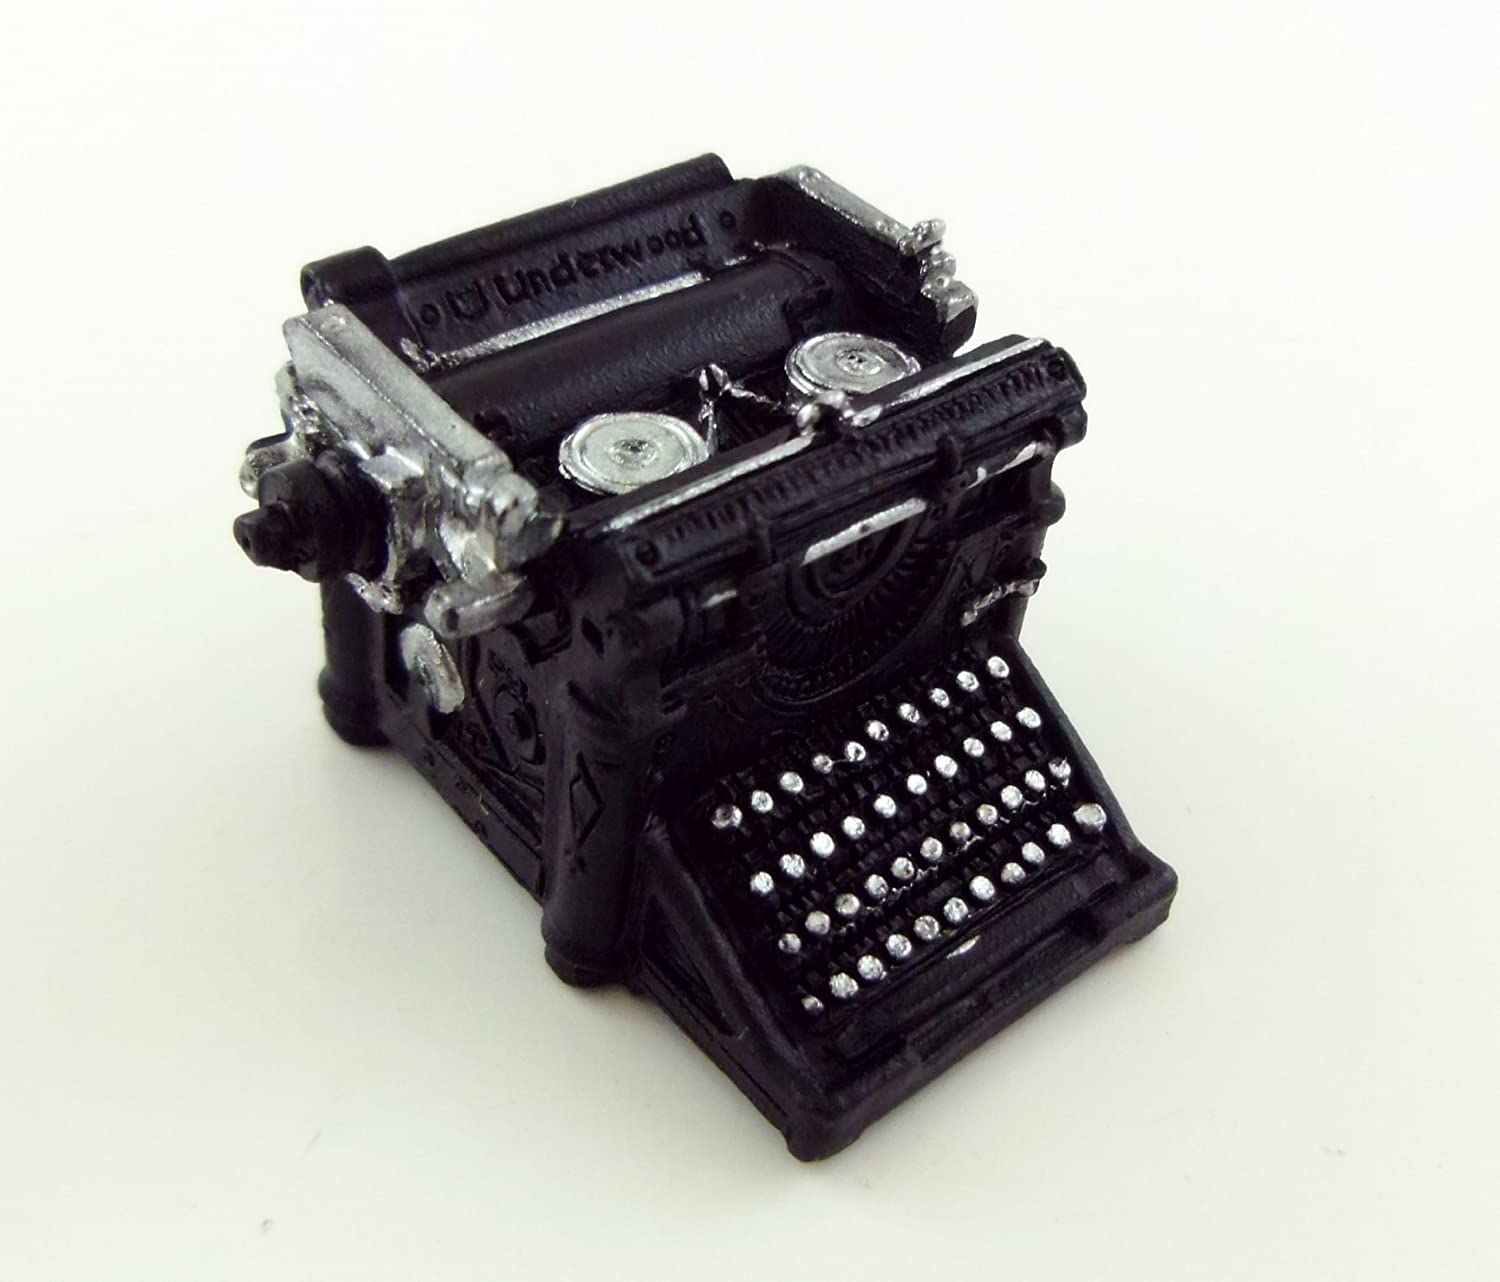 Amazon.com: Dollhouse Miniature Typewriter, Underwood, Black: Toys & Games